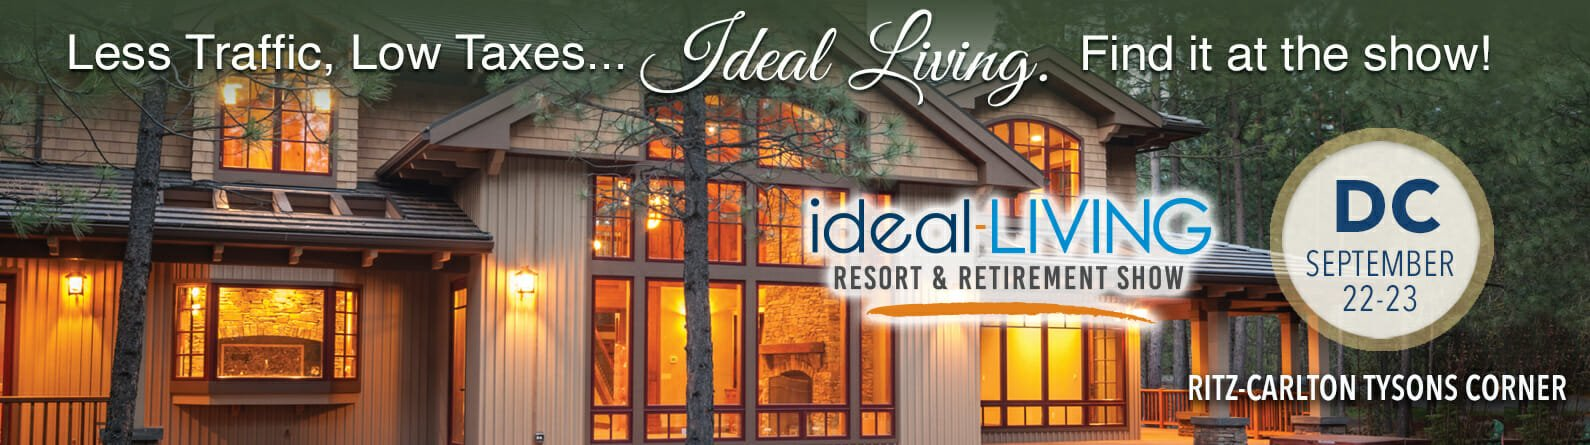 the ideal-LIVING Resort and Retirement Show in McClean, VA